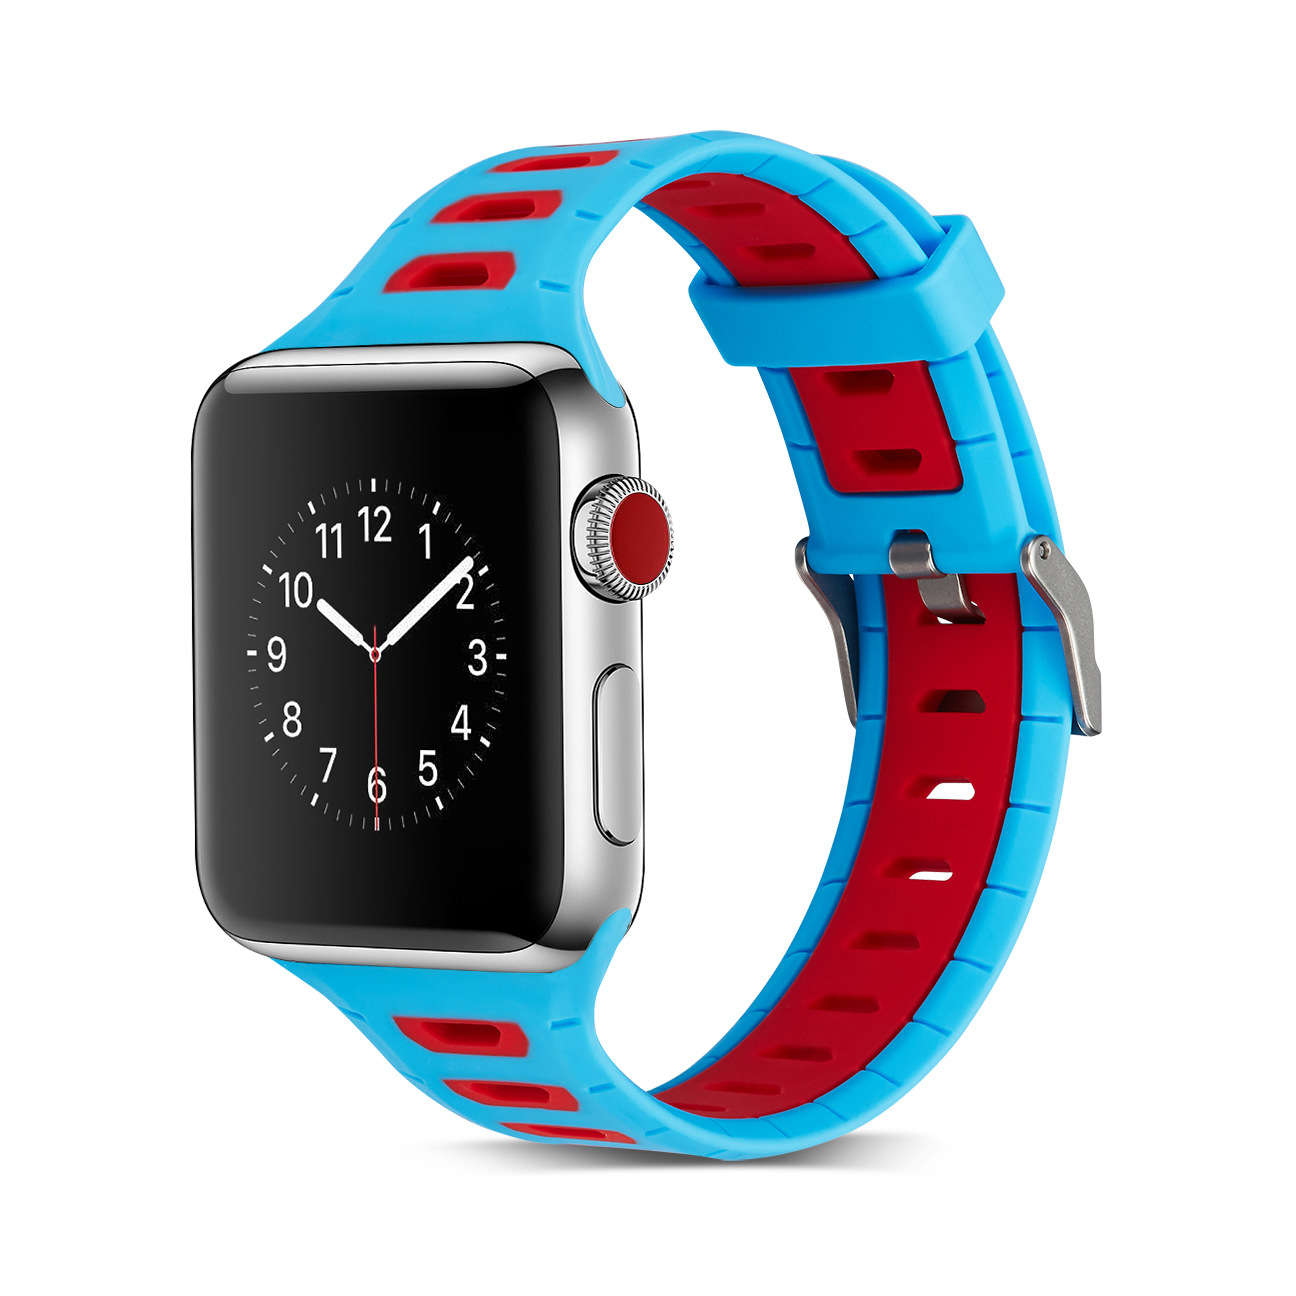 For Apple Contrast Color Silicone Watch Strap Double Color Watch Strap Nike Watch Strap Applewatch1/2/3 Watch Strap